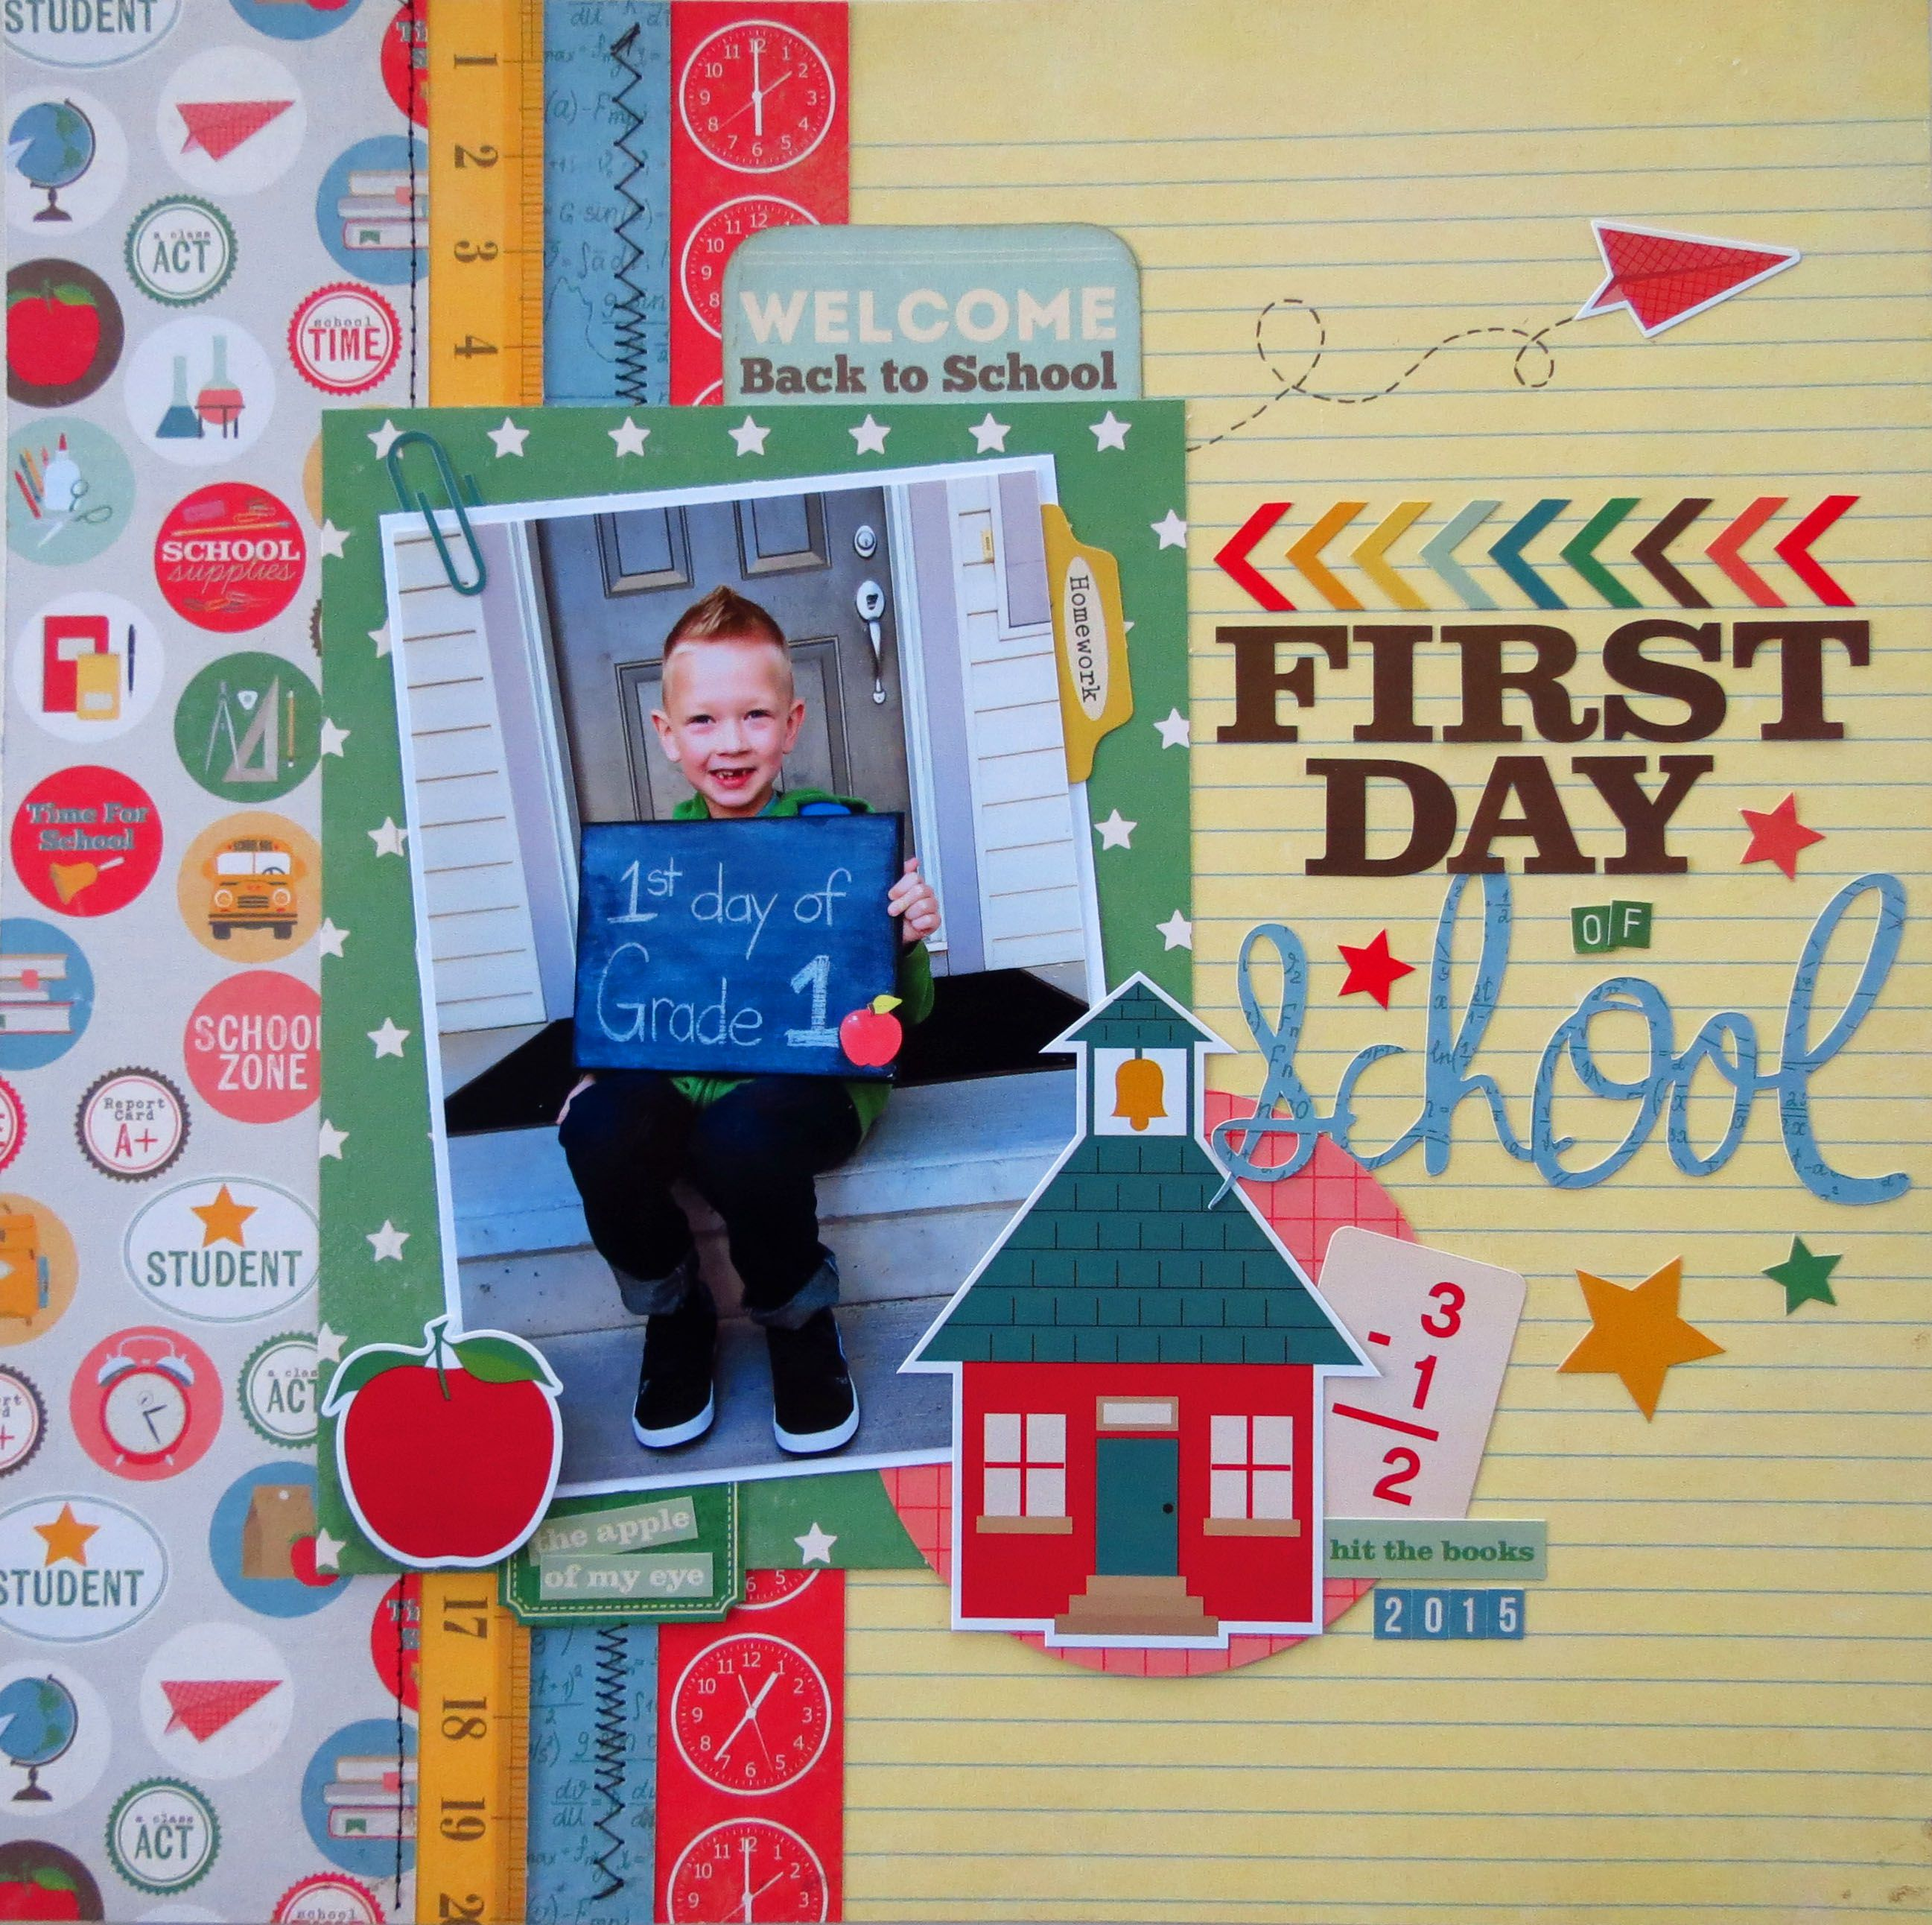 First Day of School Scrapbook Layout Ideas